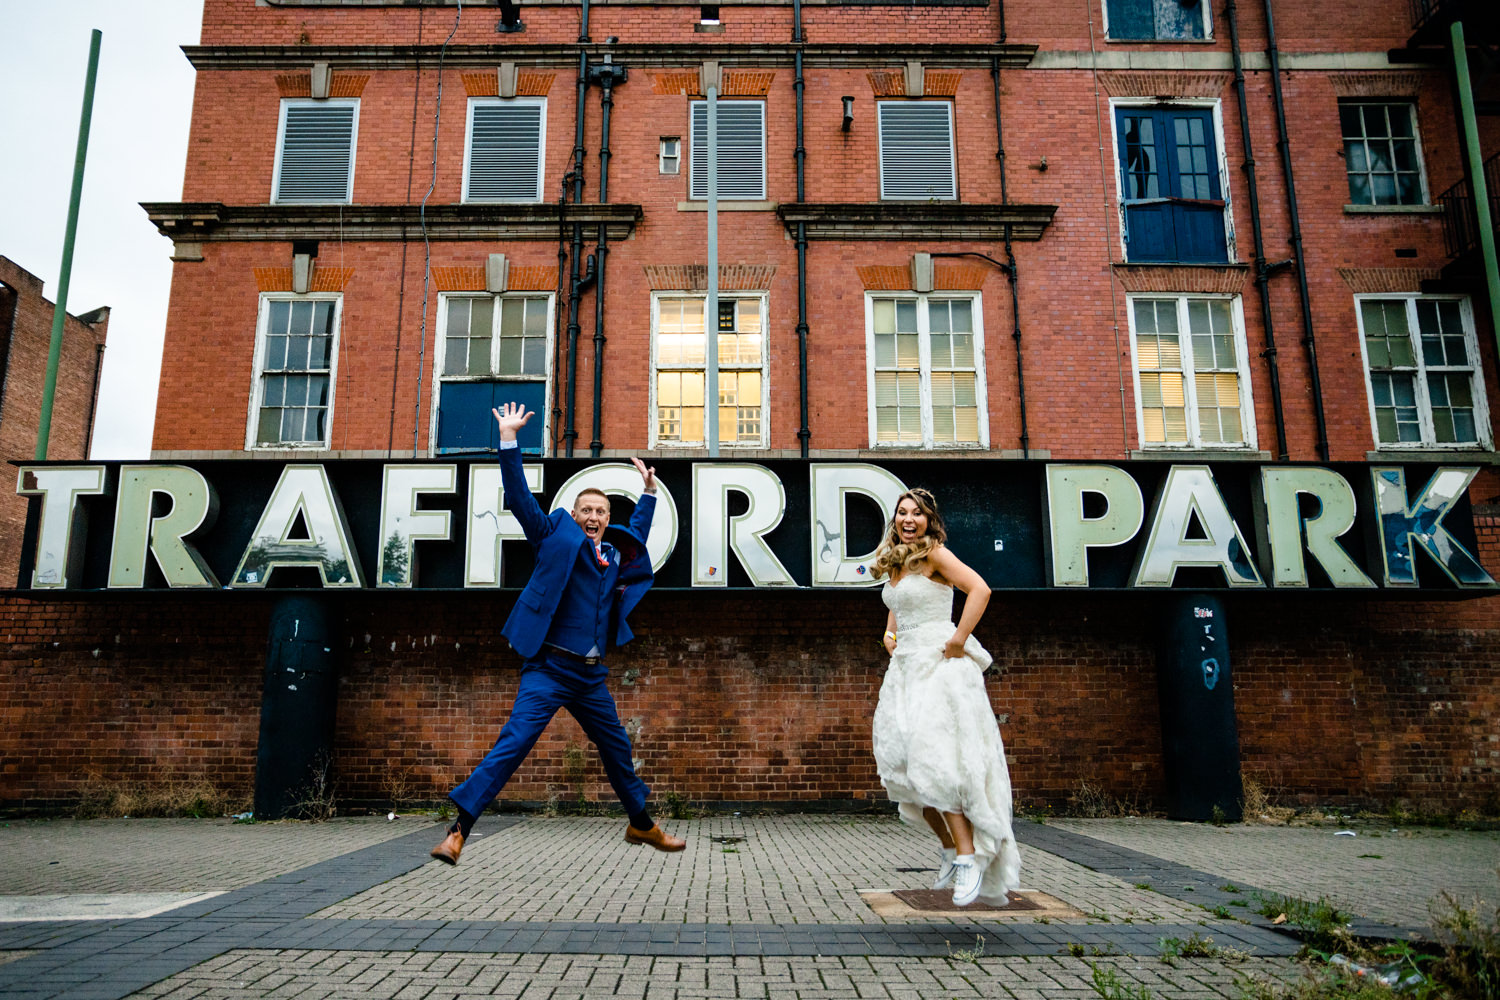 A couple jumping in the air, wedding	photographs Victoria Warehouse